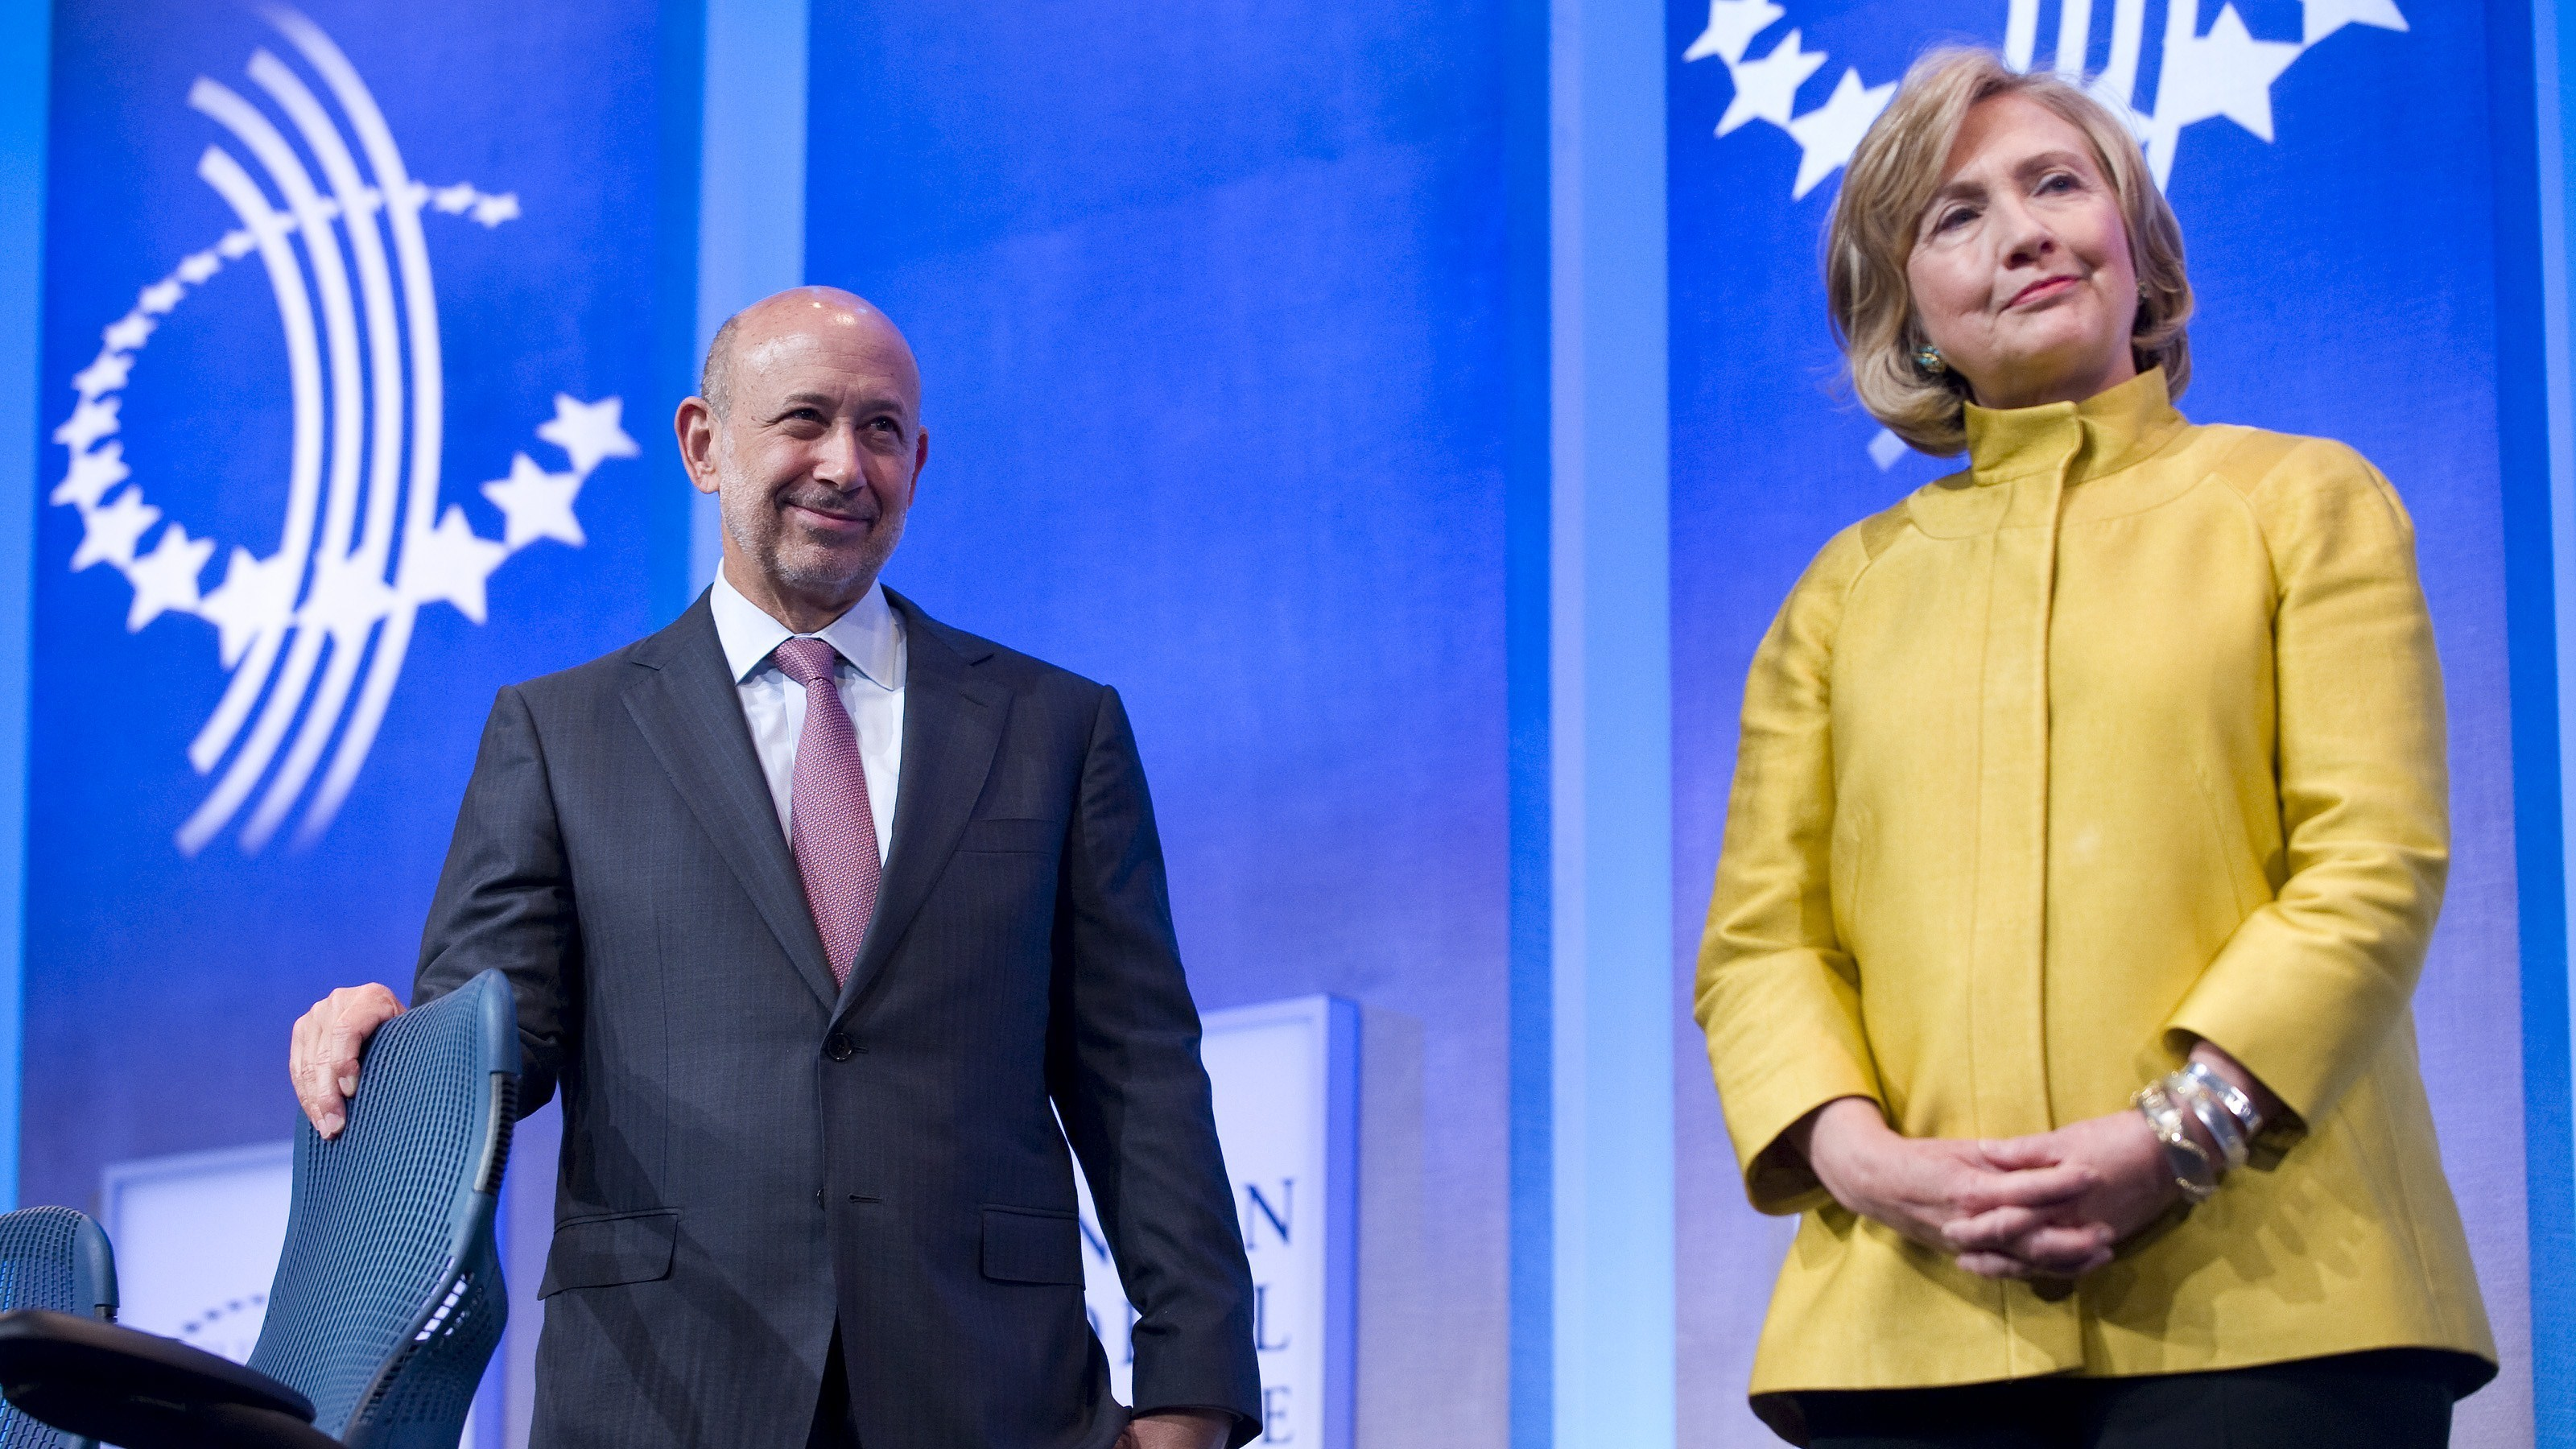 Goldman Sachs Chairman & CEO Lloyd Blankfein stands with Hillary Clinton during the 2014 Clinton Global Initiative meeting in New York on Sept. 24, 2014. Stephen Chernin/AFP/Getty Images